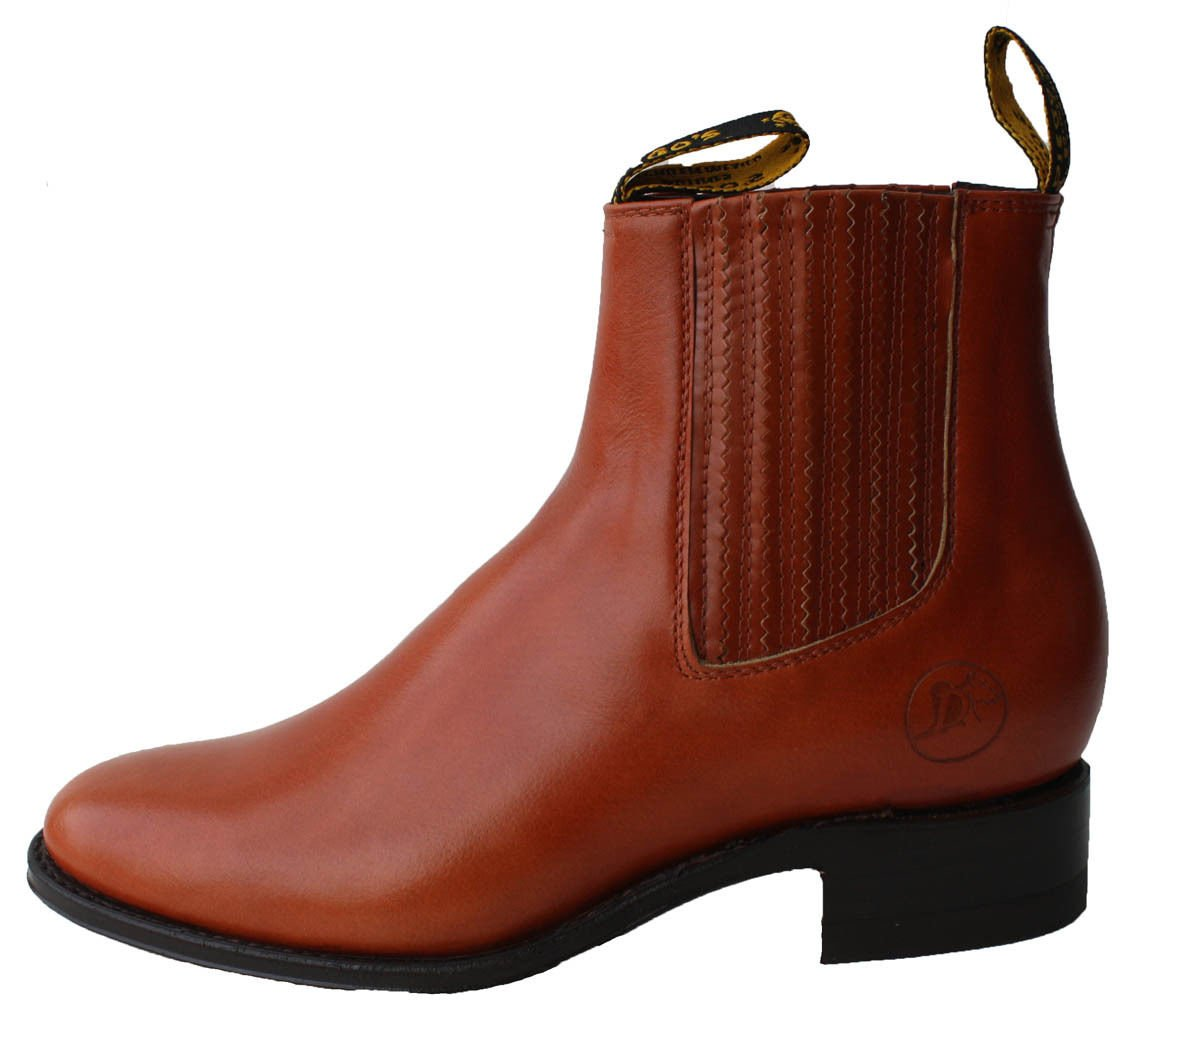 Dona Michi Men's Cowboy Genuine Smooth Cowhide Leather Short Ankle Western Rodeo Biker Boots_Tan_10